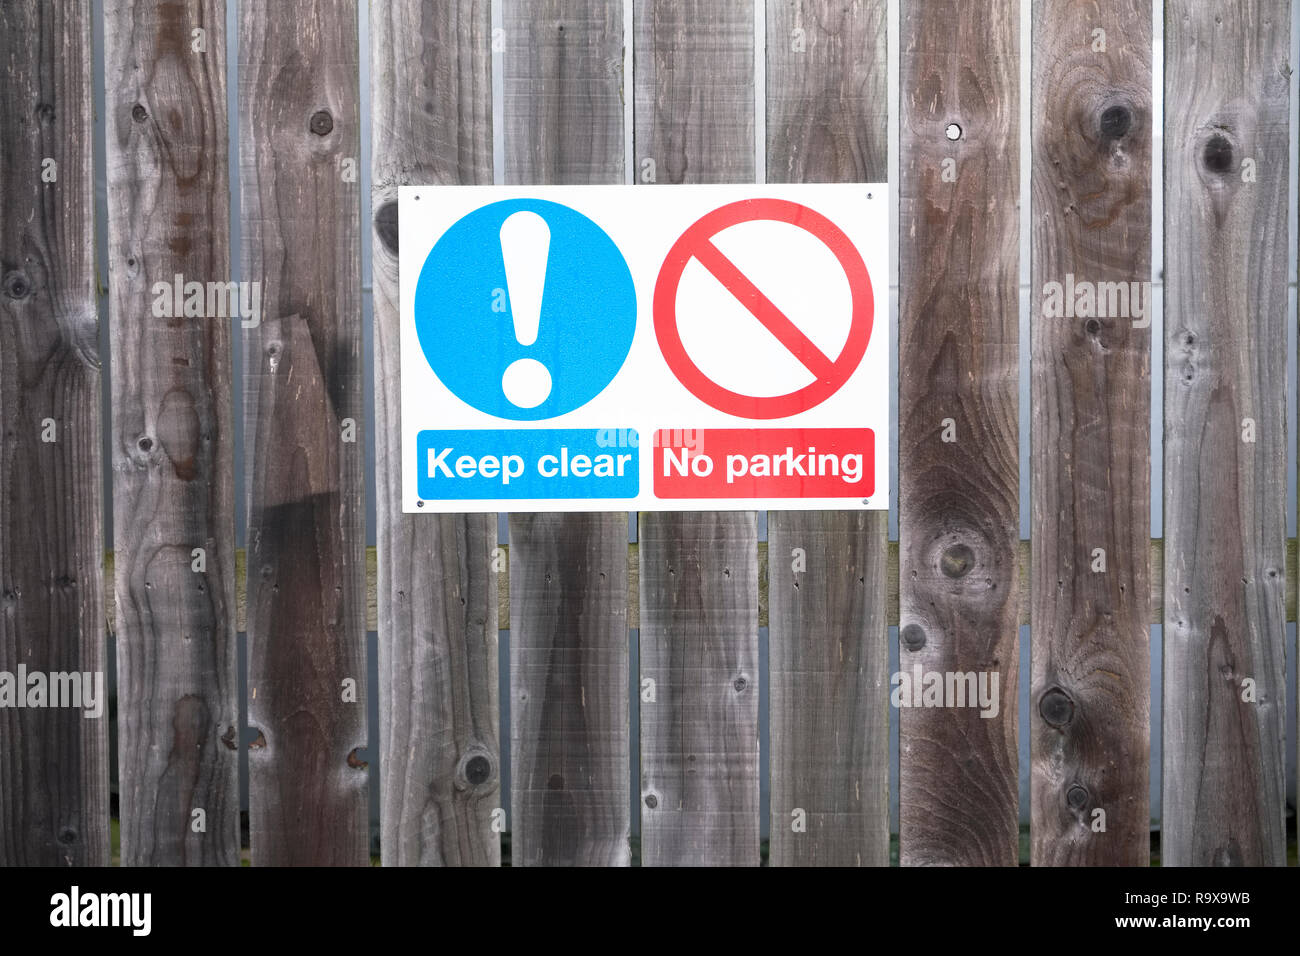 Keep clear no parking sign on wooden fence Stock Photo